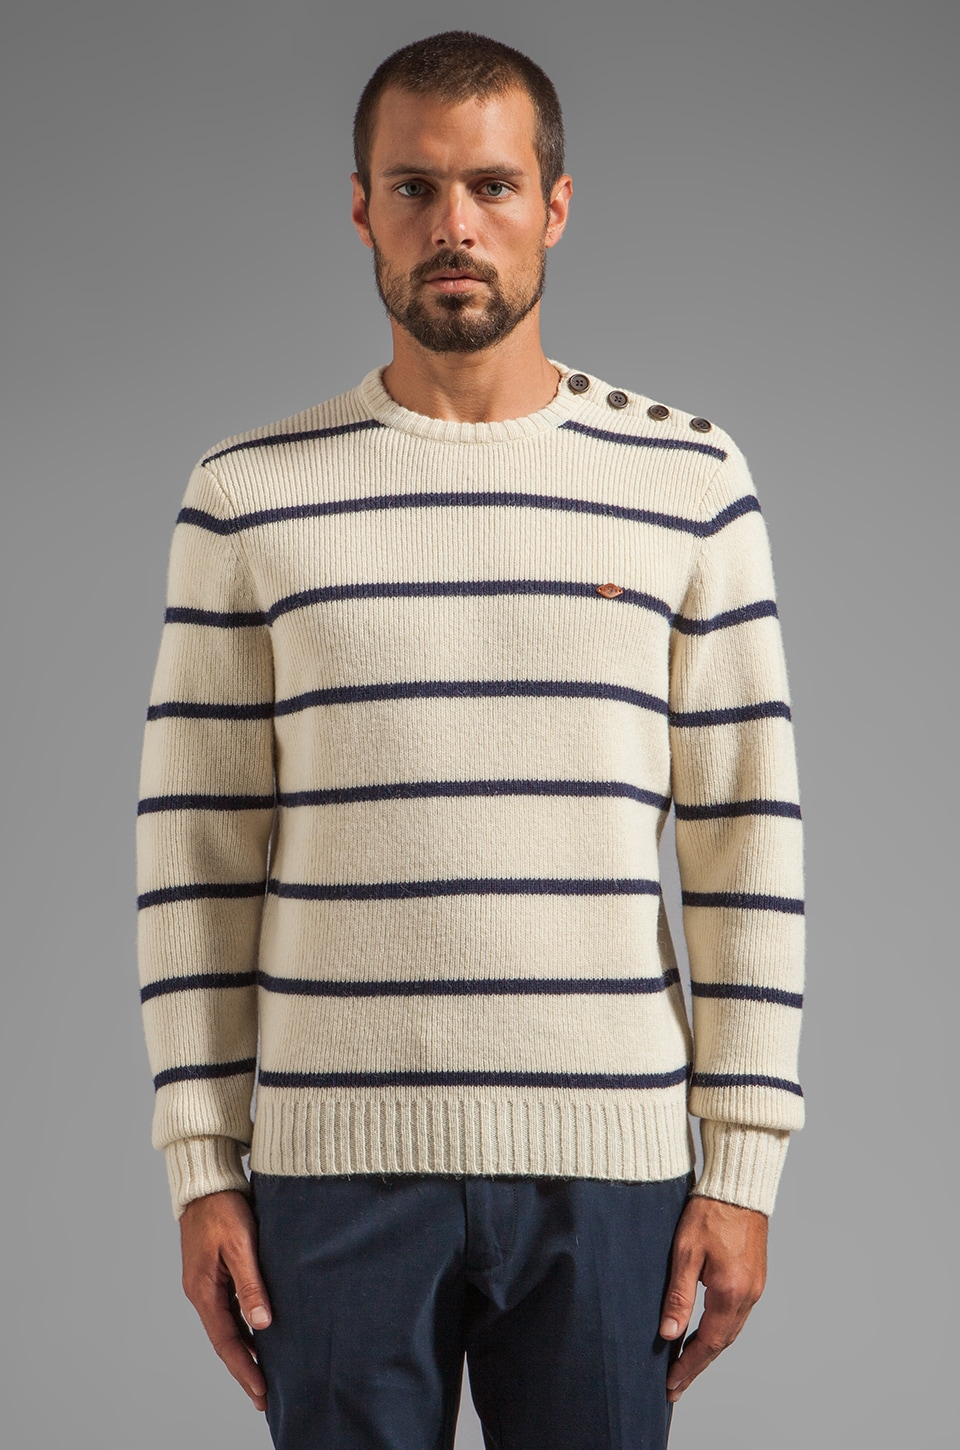 FARAH VINTAGE 1920 Ewart Striped Pullover in Ecru